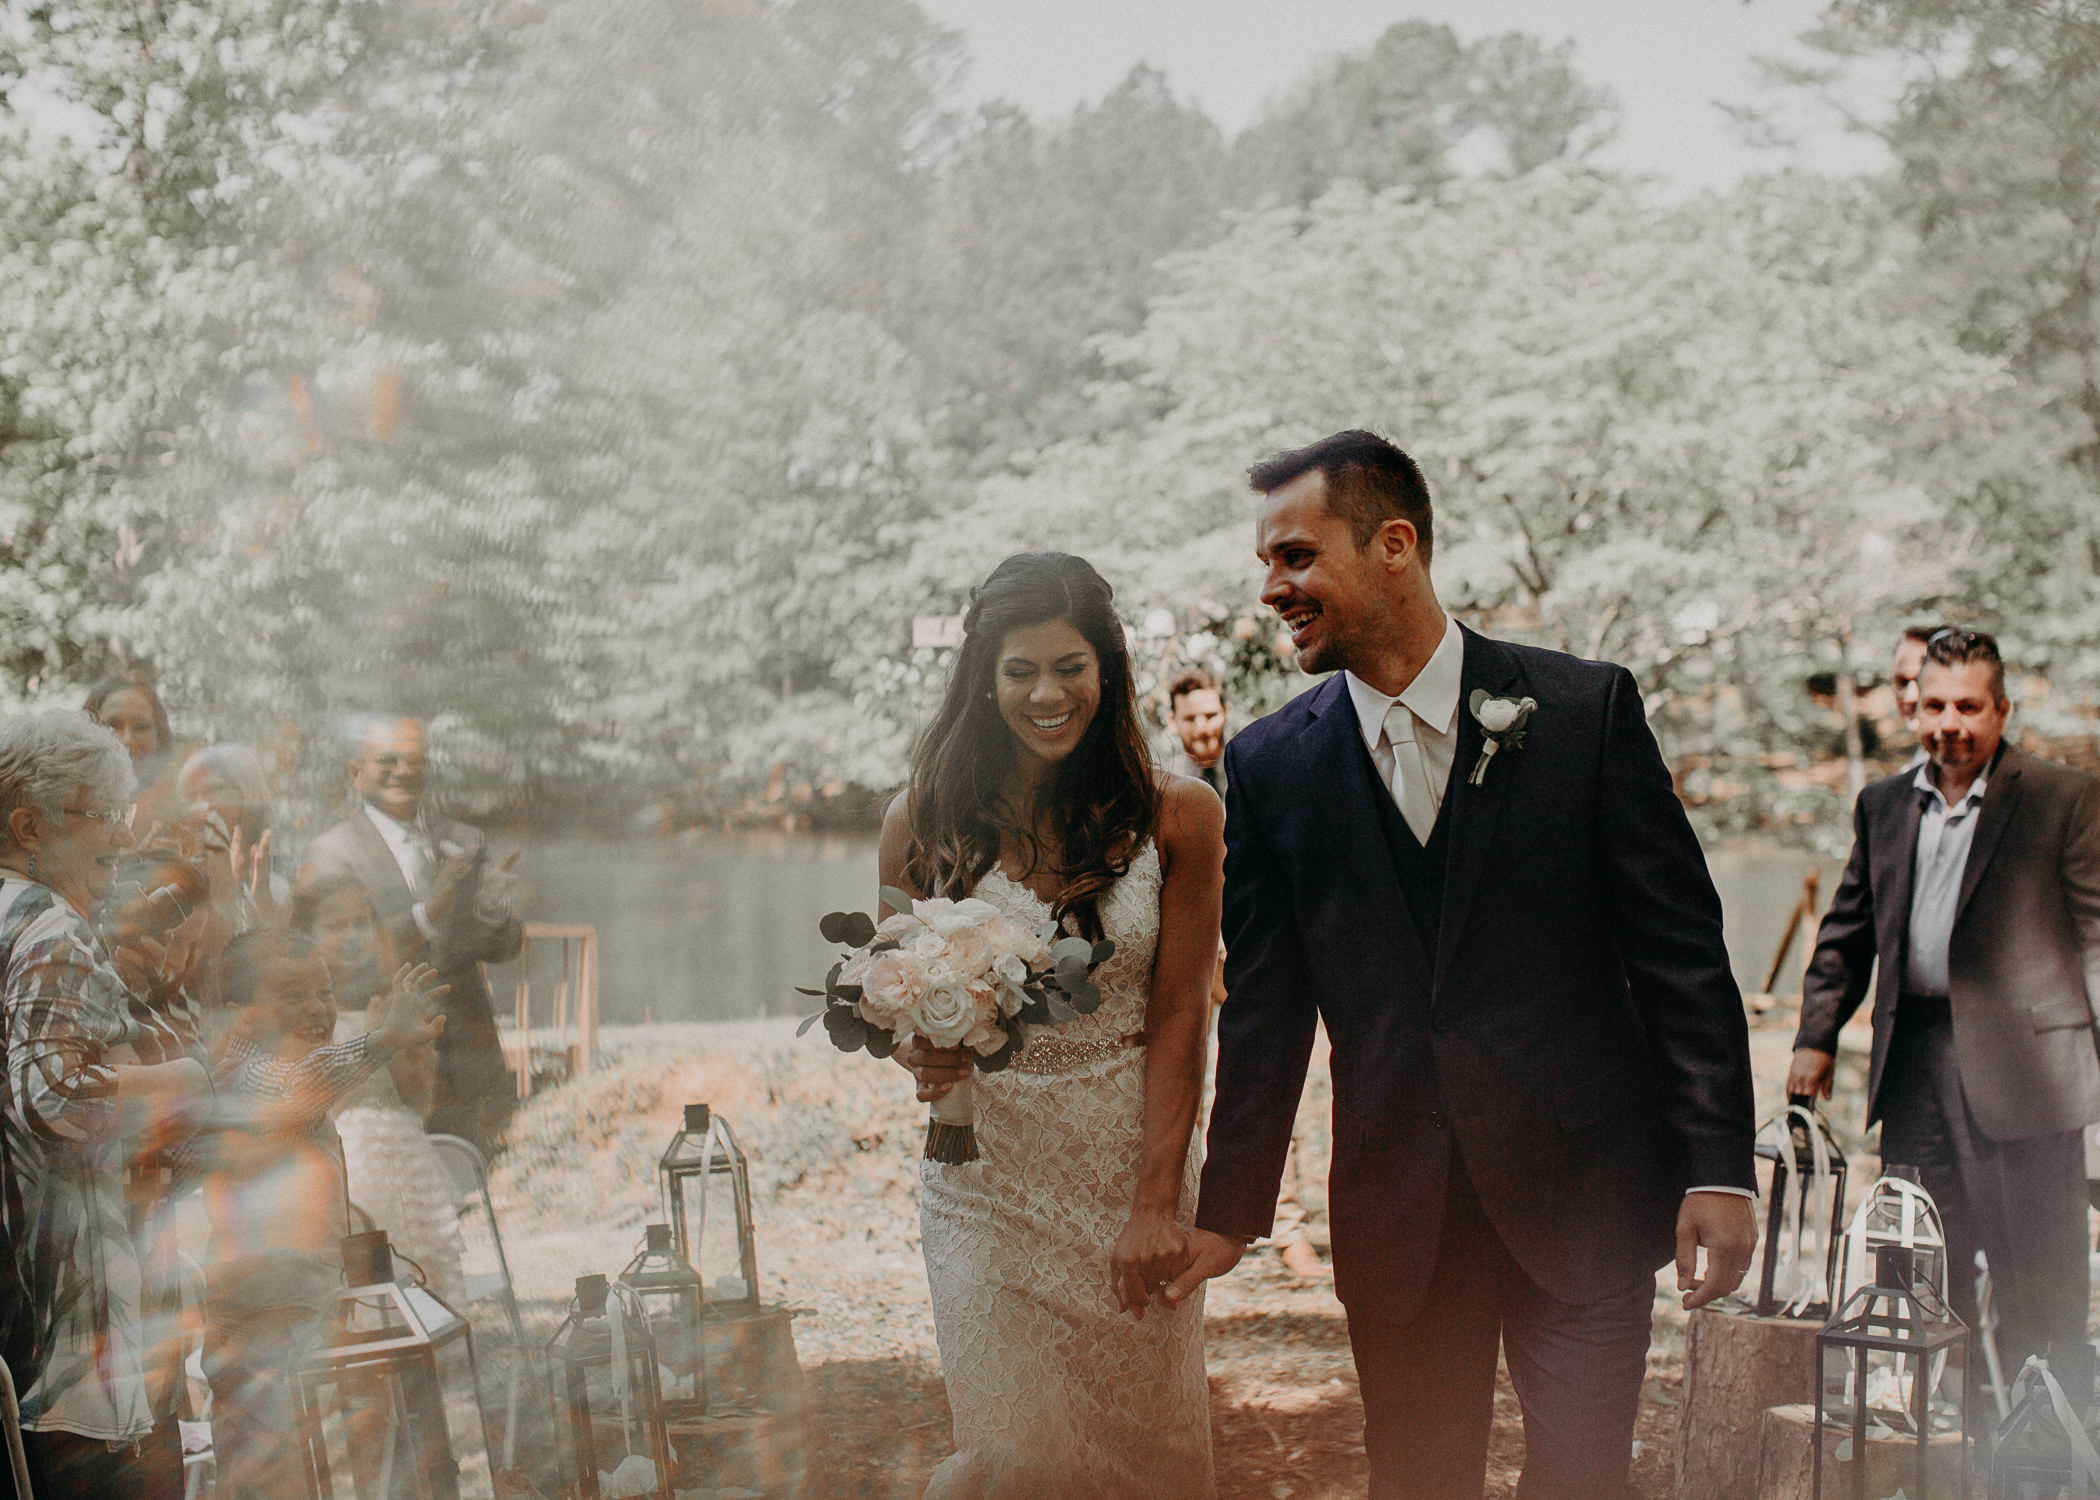 57 Garden wedding - intimate wedding atlanta wedding photographer.jpg